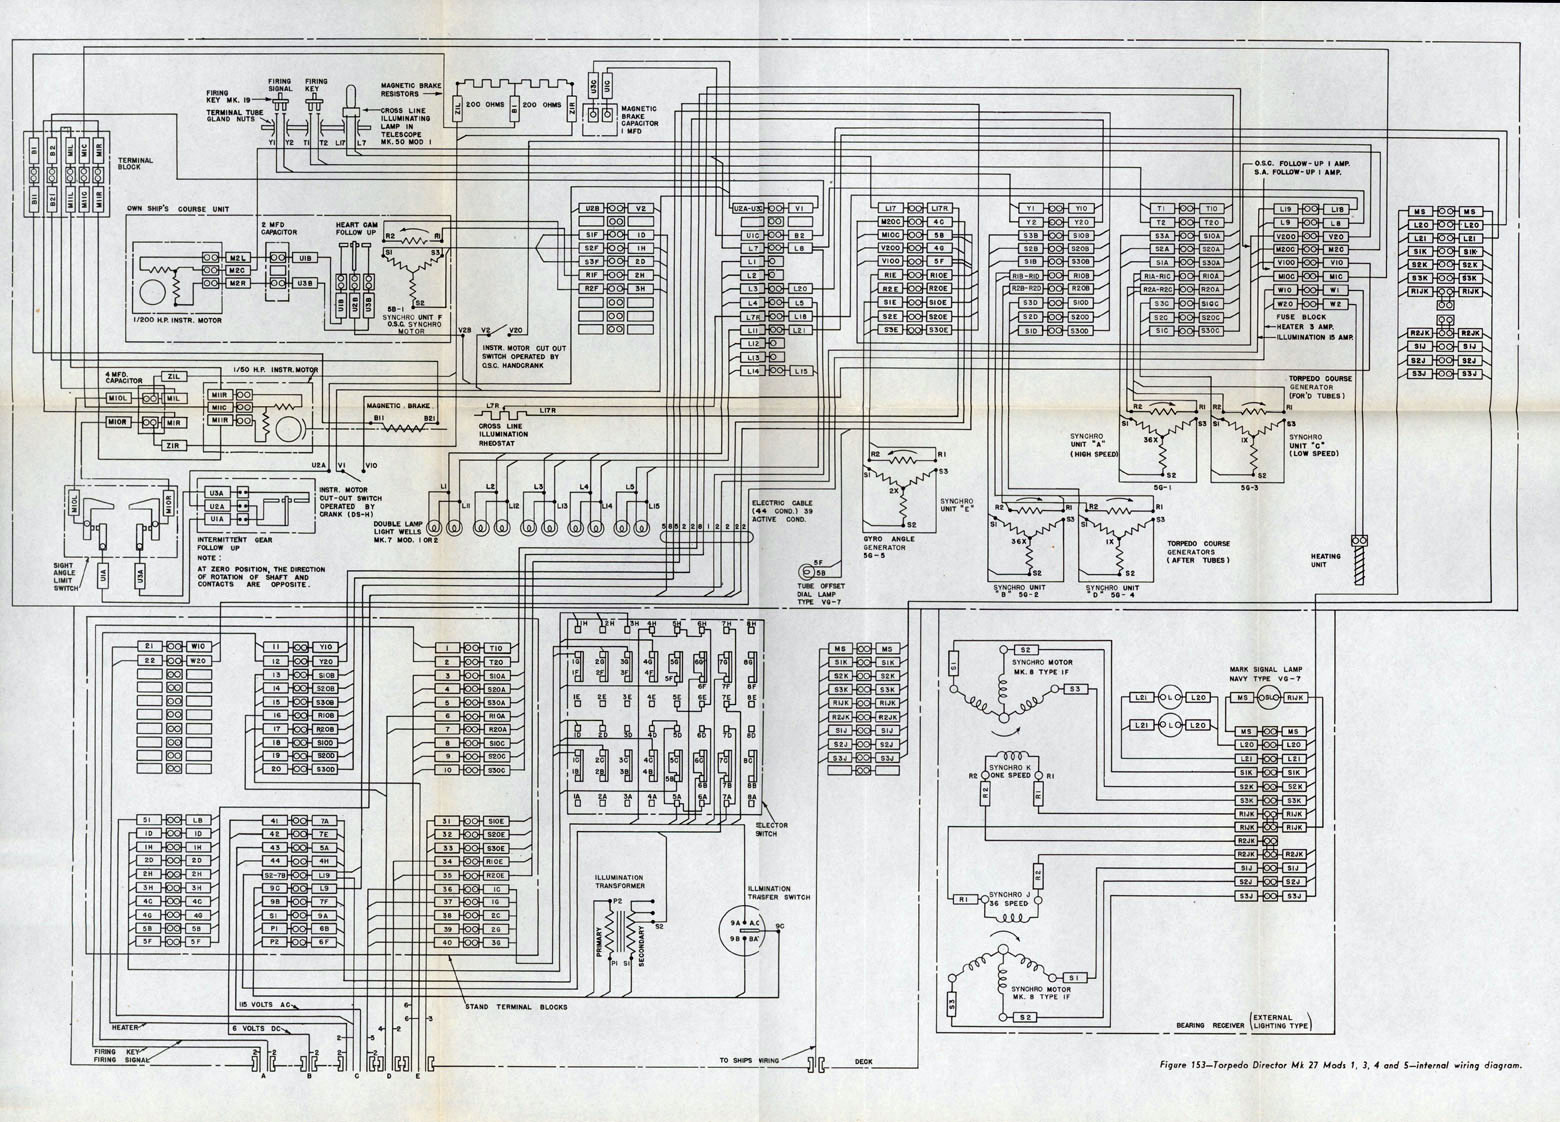 Collection of diagram 12 fiat 500 wiring diagram millions ideas alfa romeo spider ac wiring diagram schematic wiring diagrams also 1990 alfa romeo fuse box romeo, 2012 fiat 500 wiring diagram